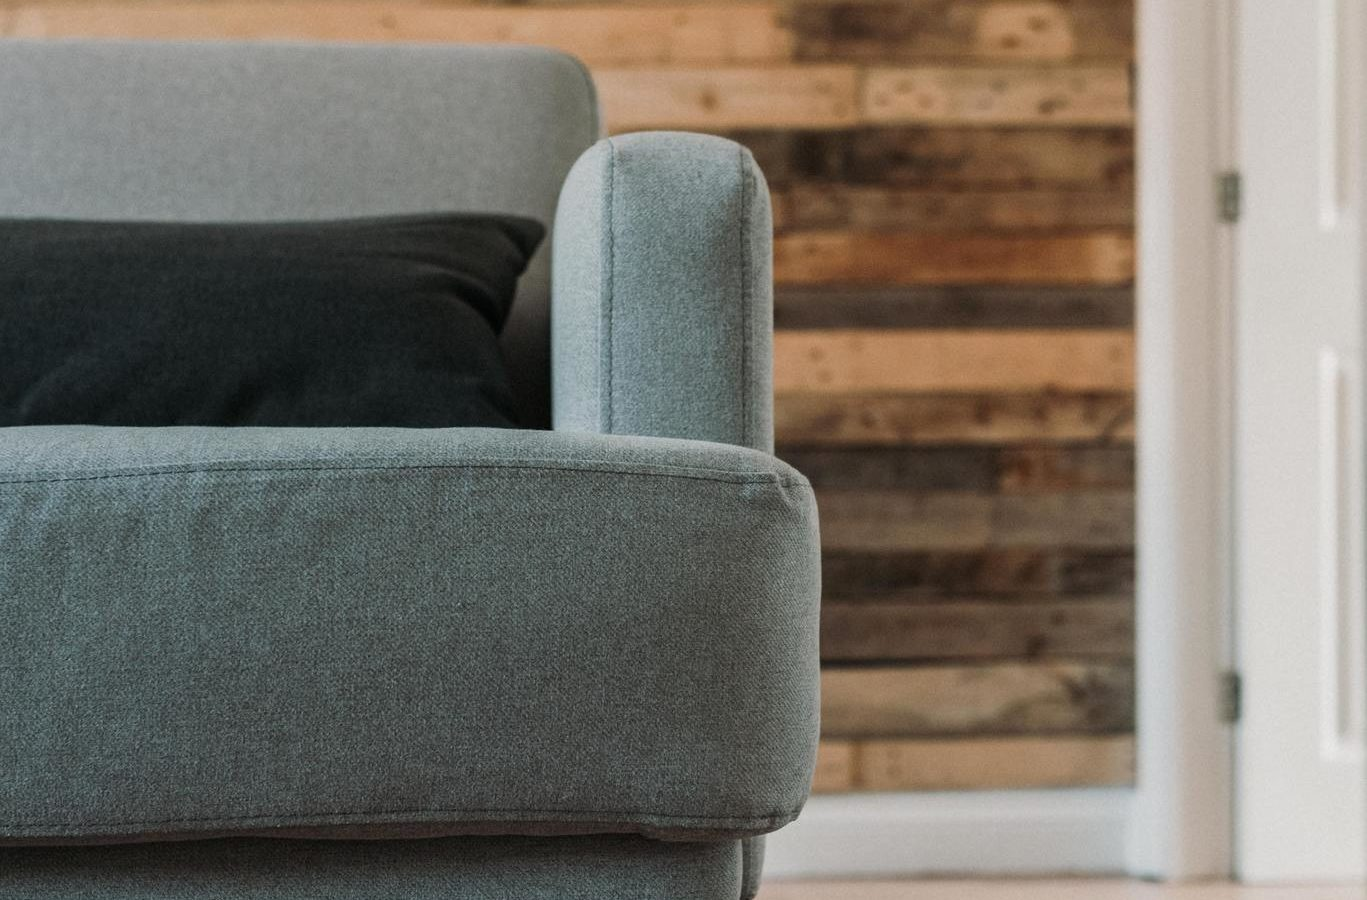 Couch on a Wood Floor with Paneling